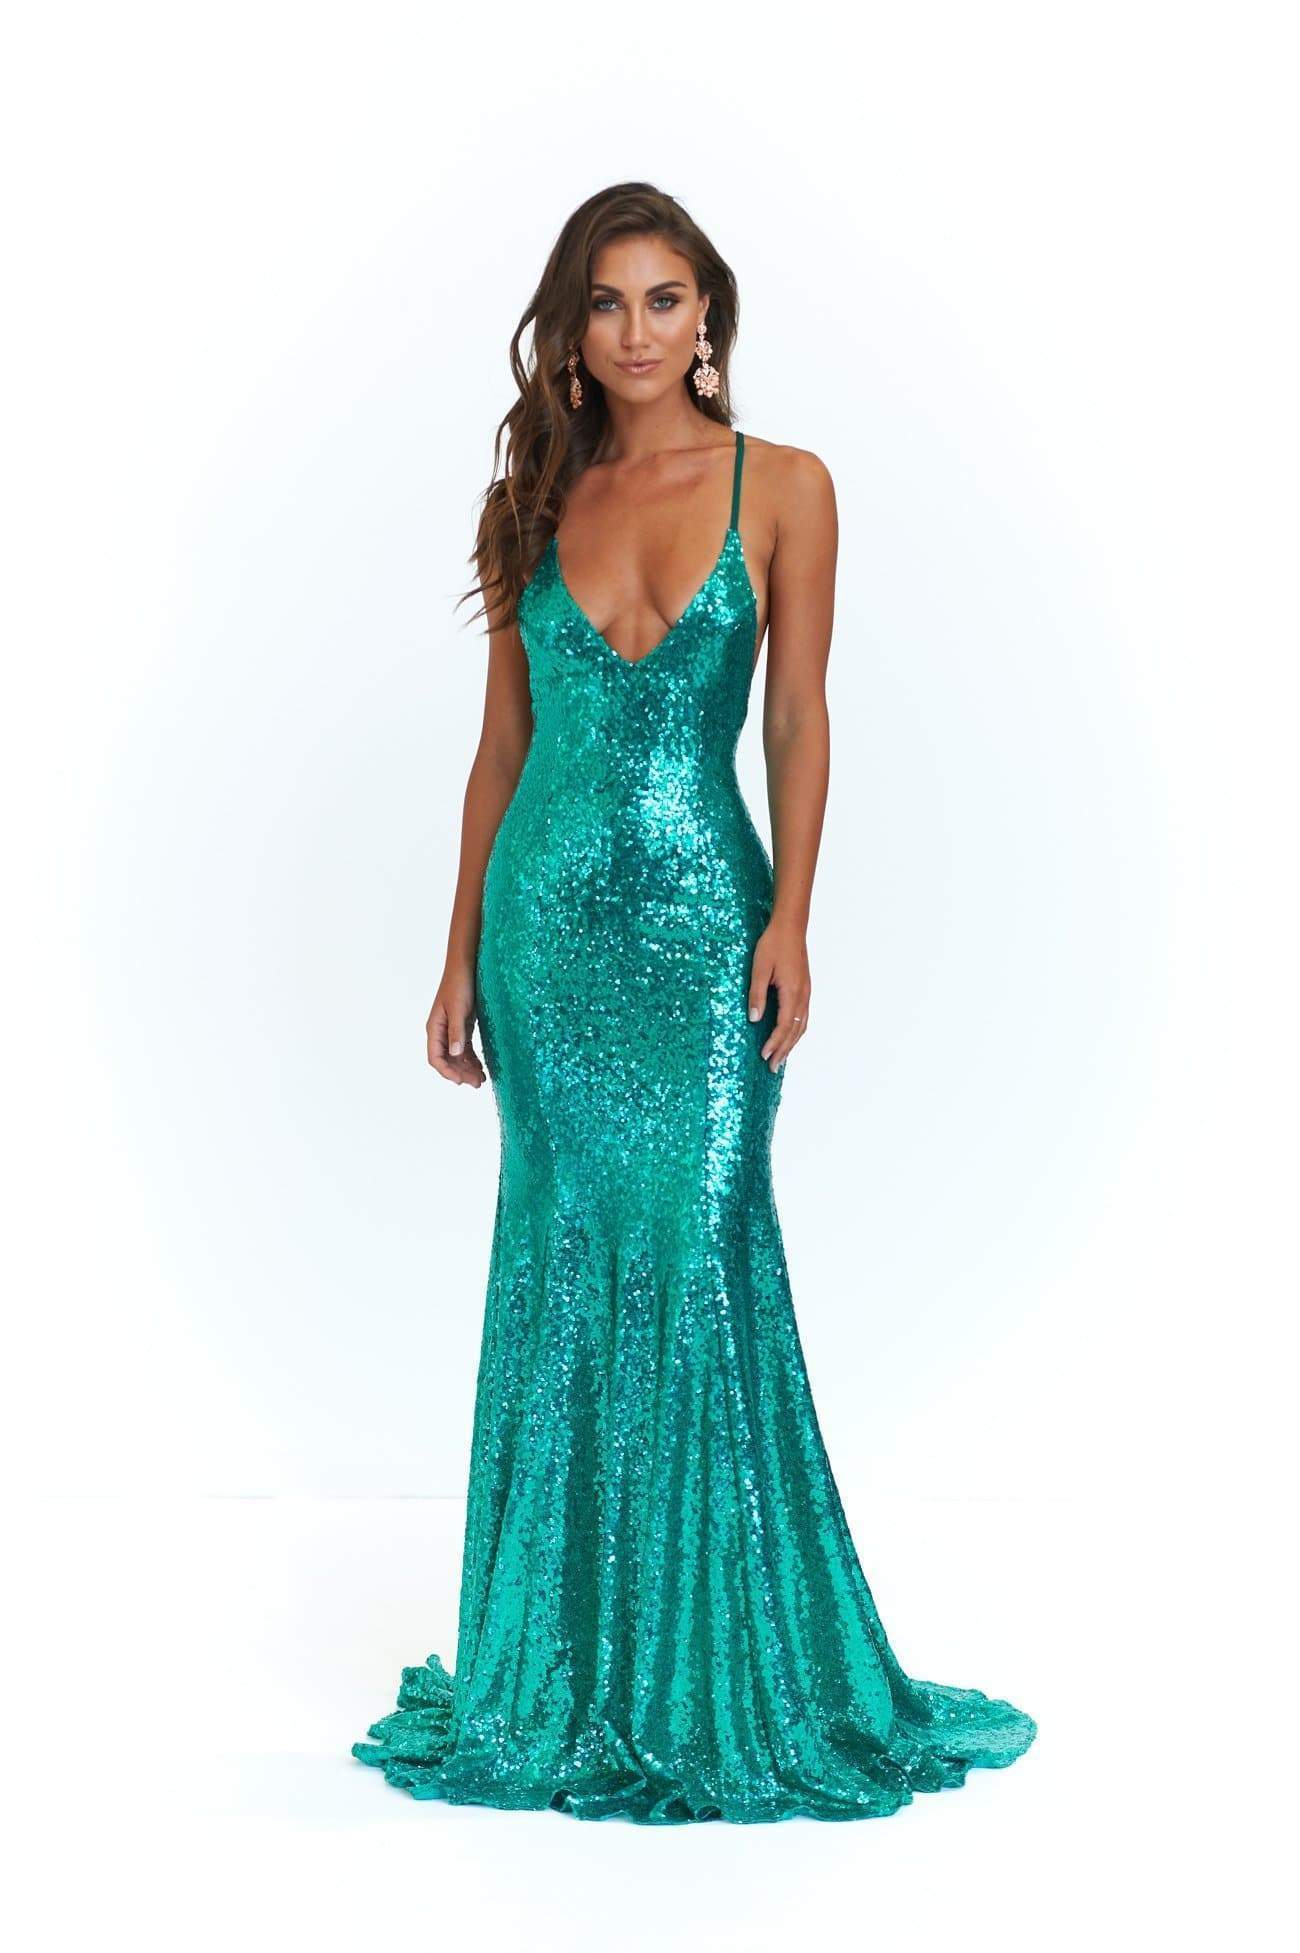 A&N Kendall - Emerald Sequin Gown with V Neck and Criss Cross back